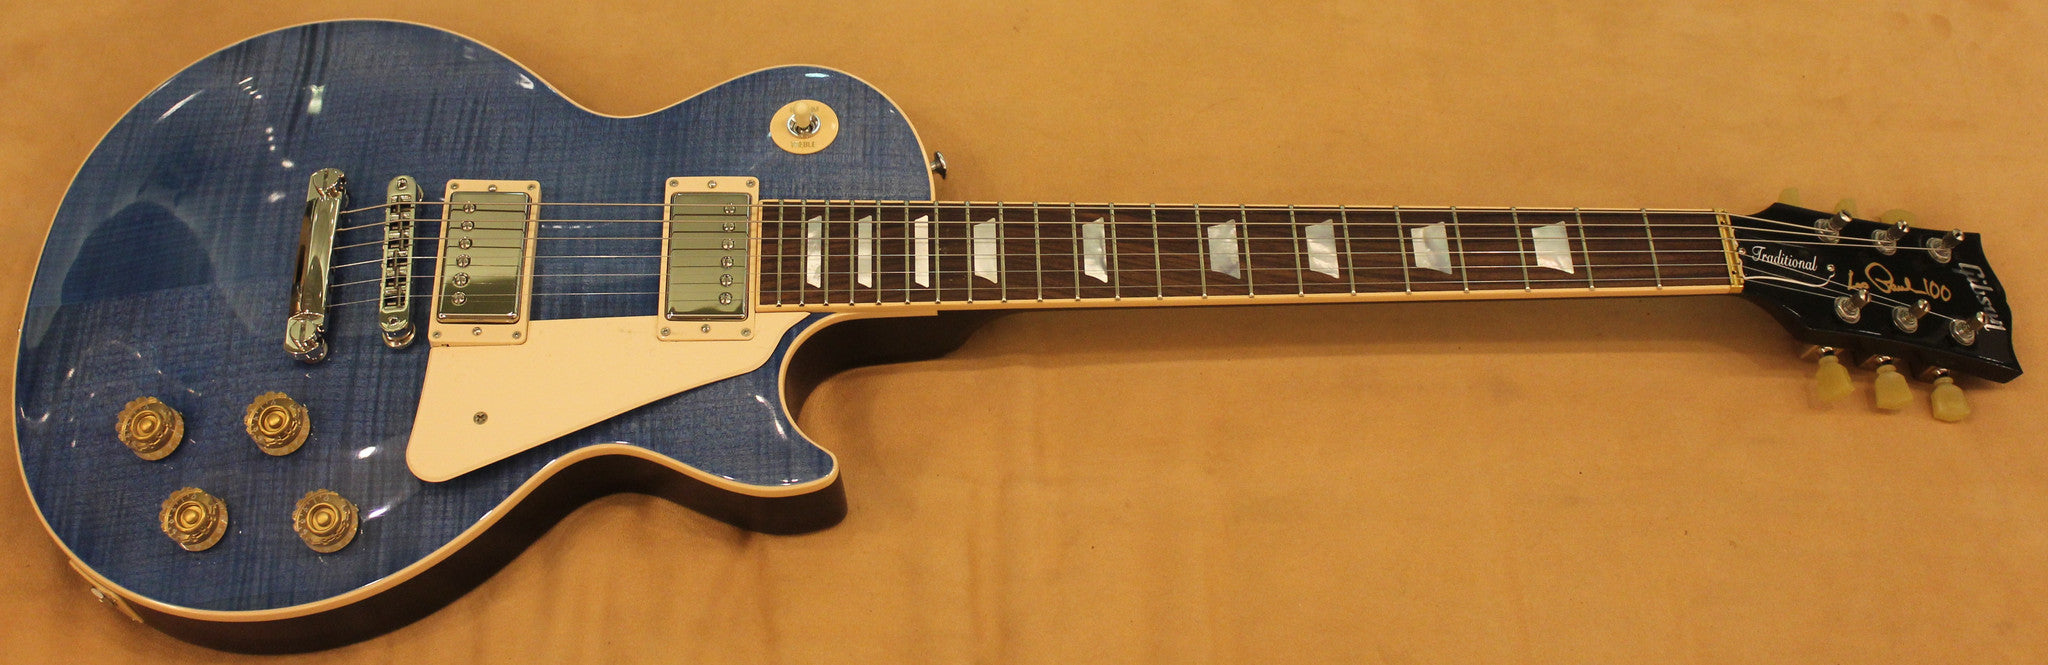 2015-gibson-lp-traditional-ocean-blue-lptd15obnh1-sn-150042566